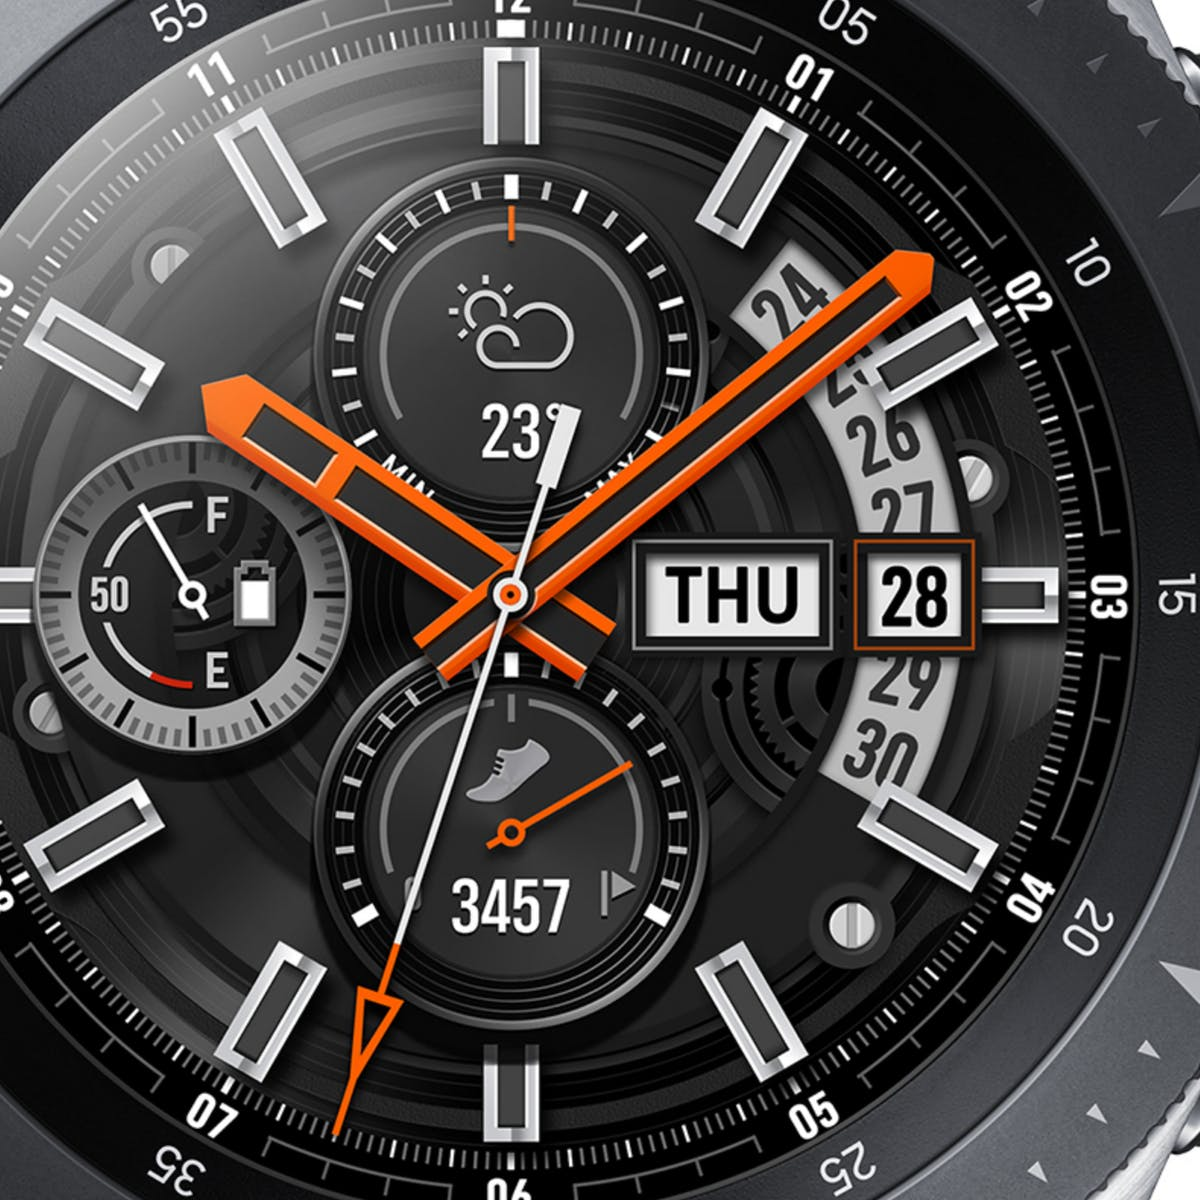 Samsung's Galaxy Watch: A Scientist Weighs in on Its Features